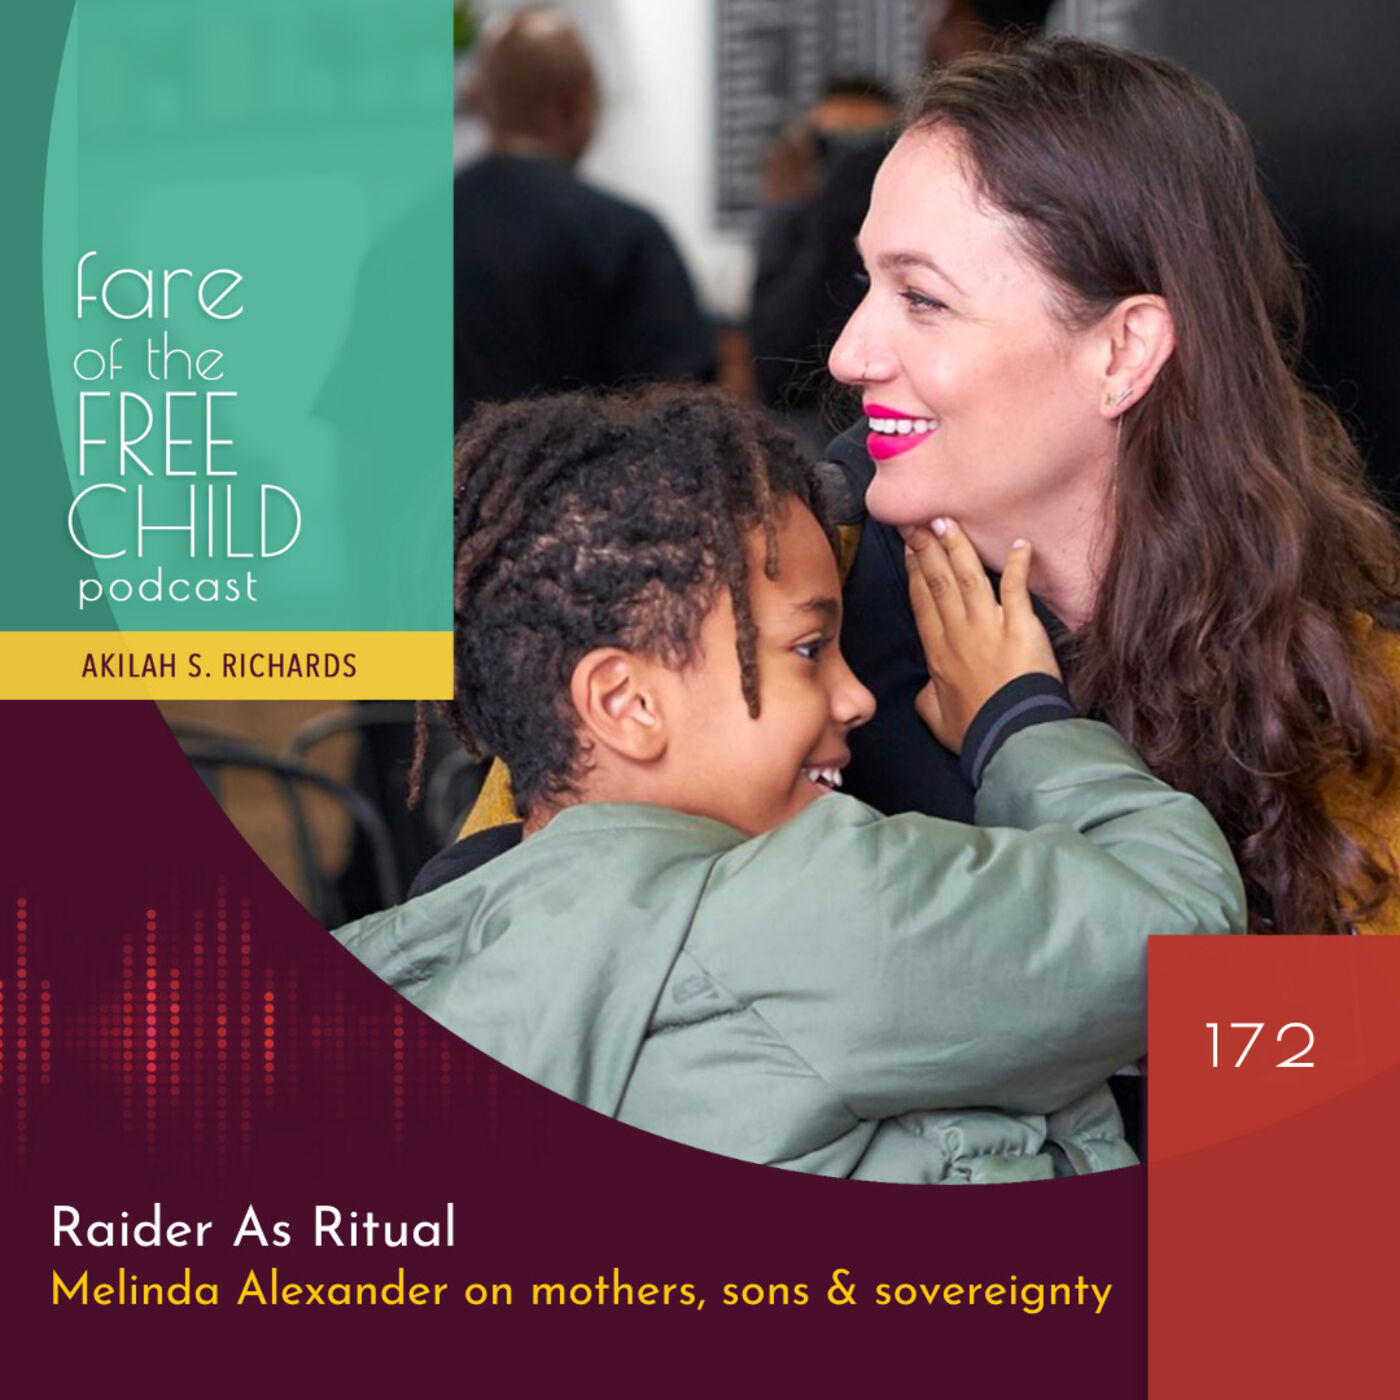 Ep 172: Raider As Ritual. Melinda Alexander on mothers, sons & sovereignty